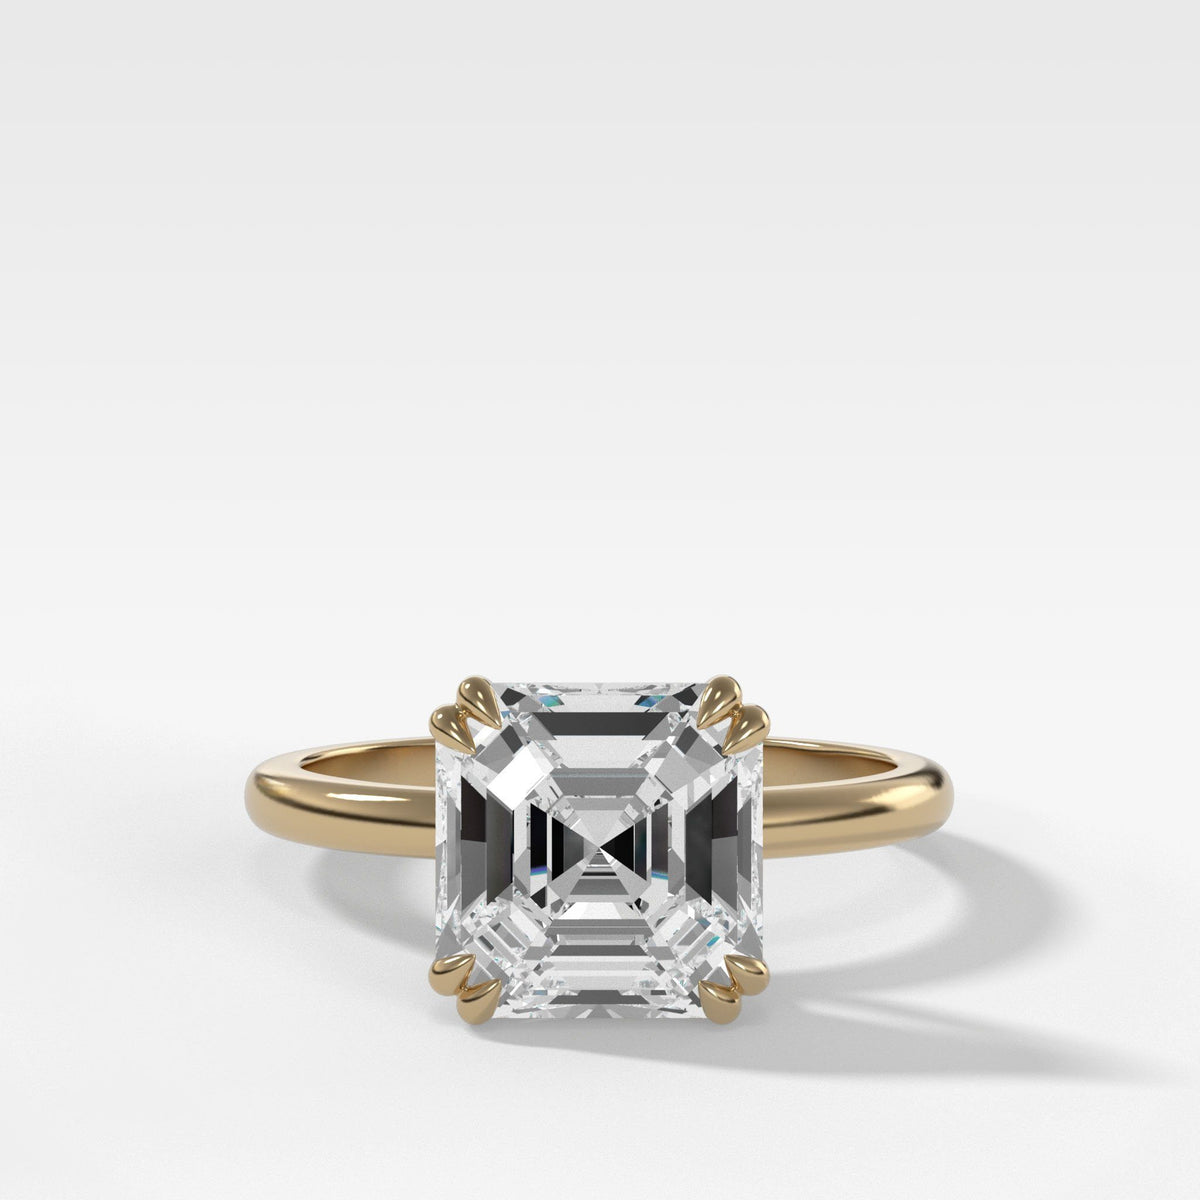 Signature Cathedral Solitaire With Asscher Cut Engagement Good Stone Inc Yellow Gold 14k